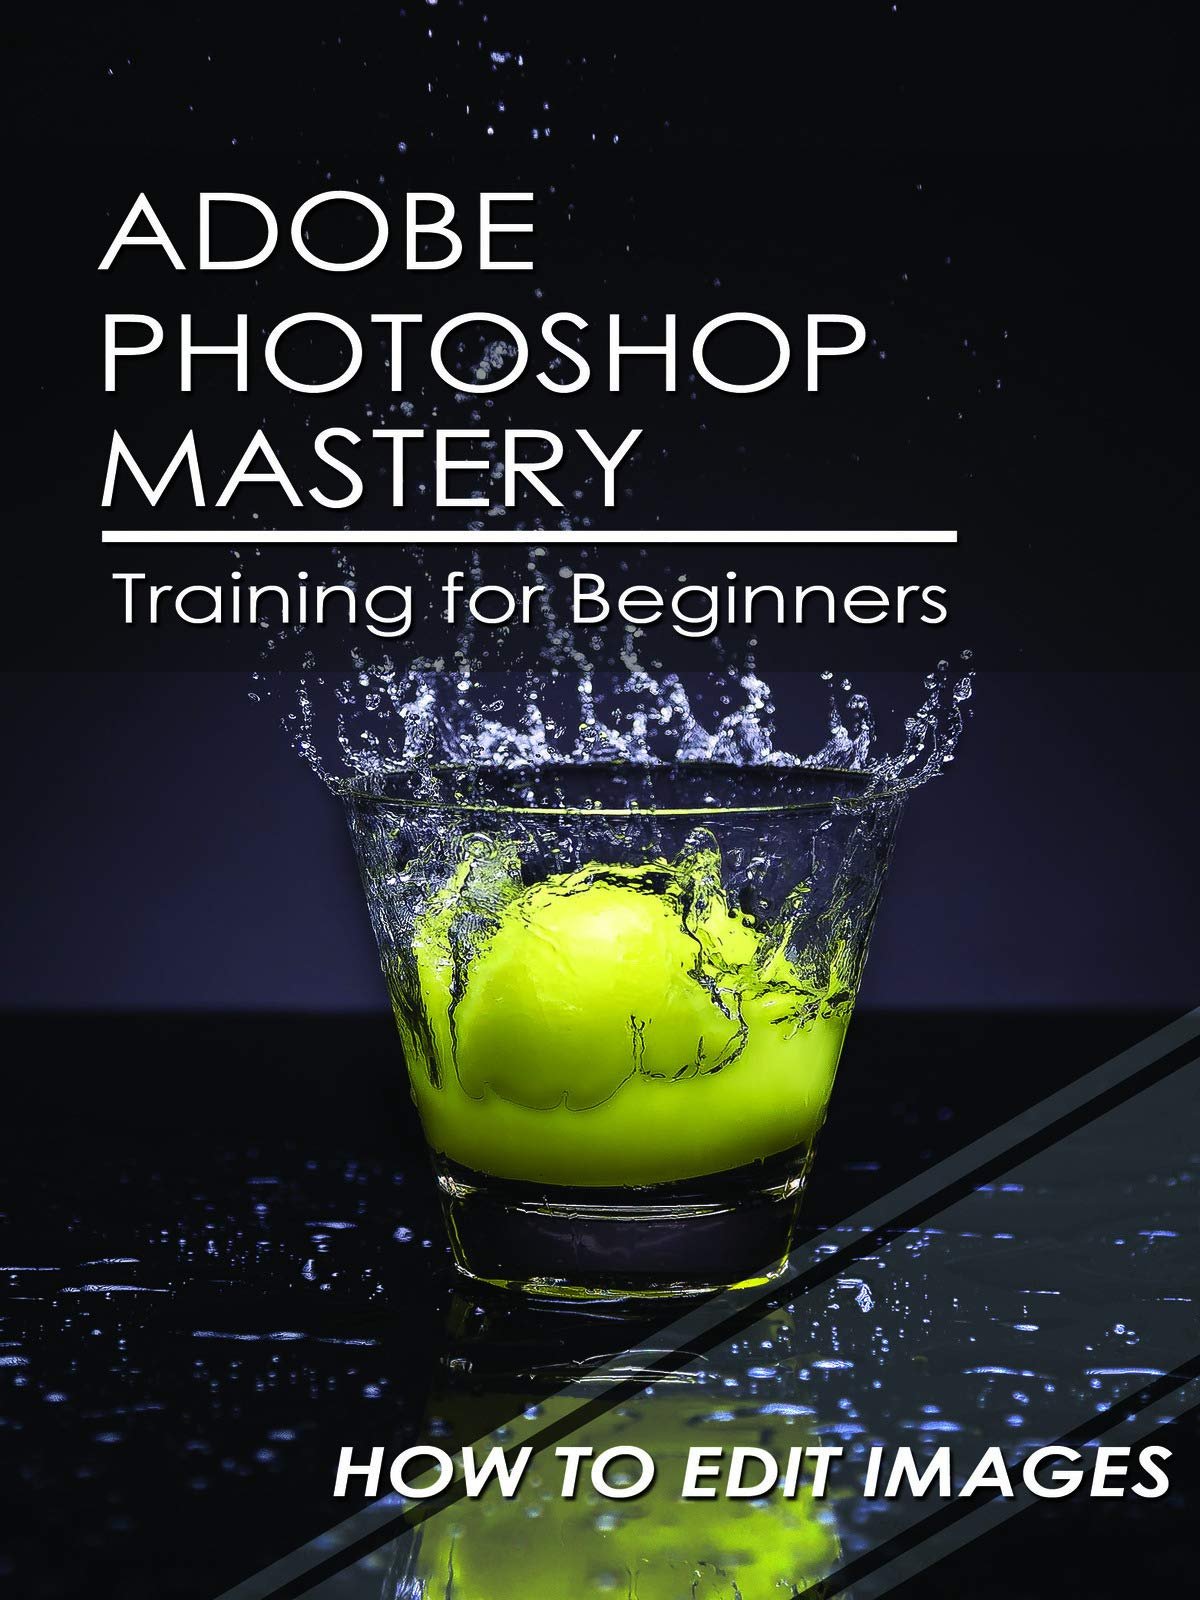 Adobe Photoshop Mastery Training For Beginners: How To Edit Images